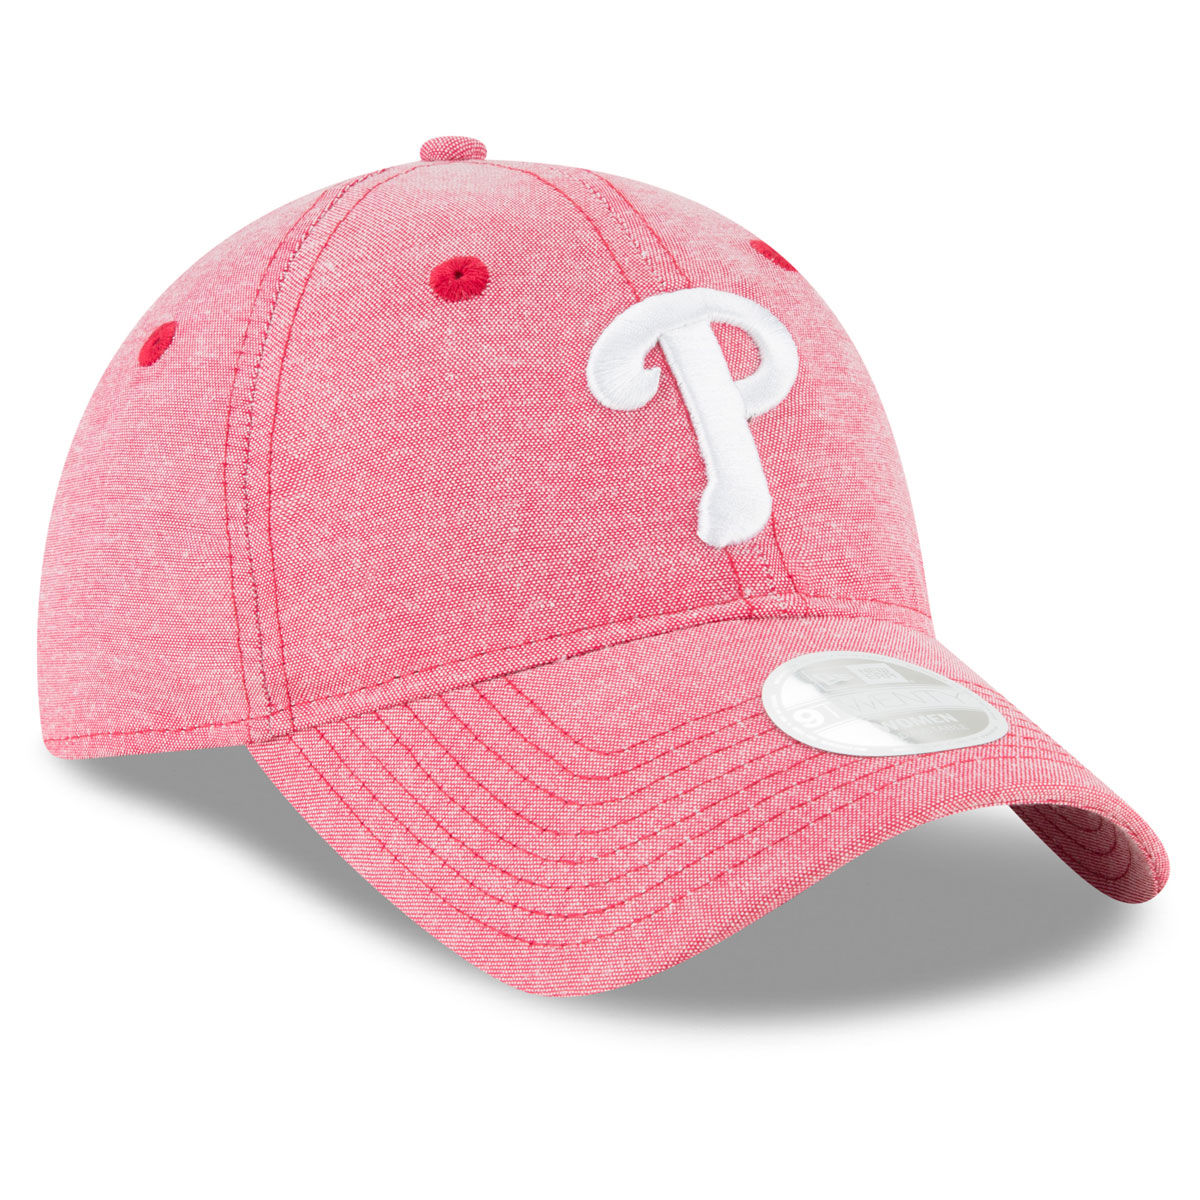 Philadelphia Phillies Womens Linen 9TWENTY Hat